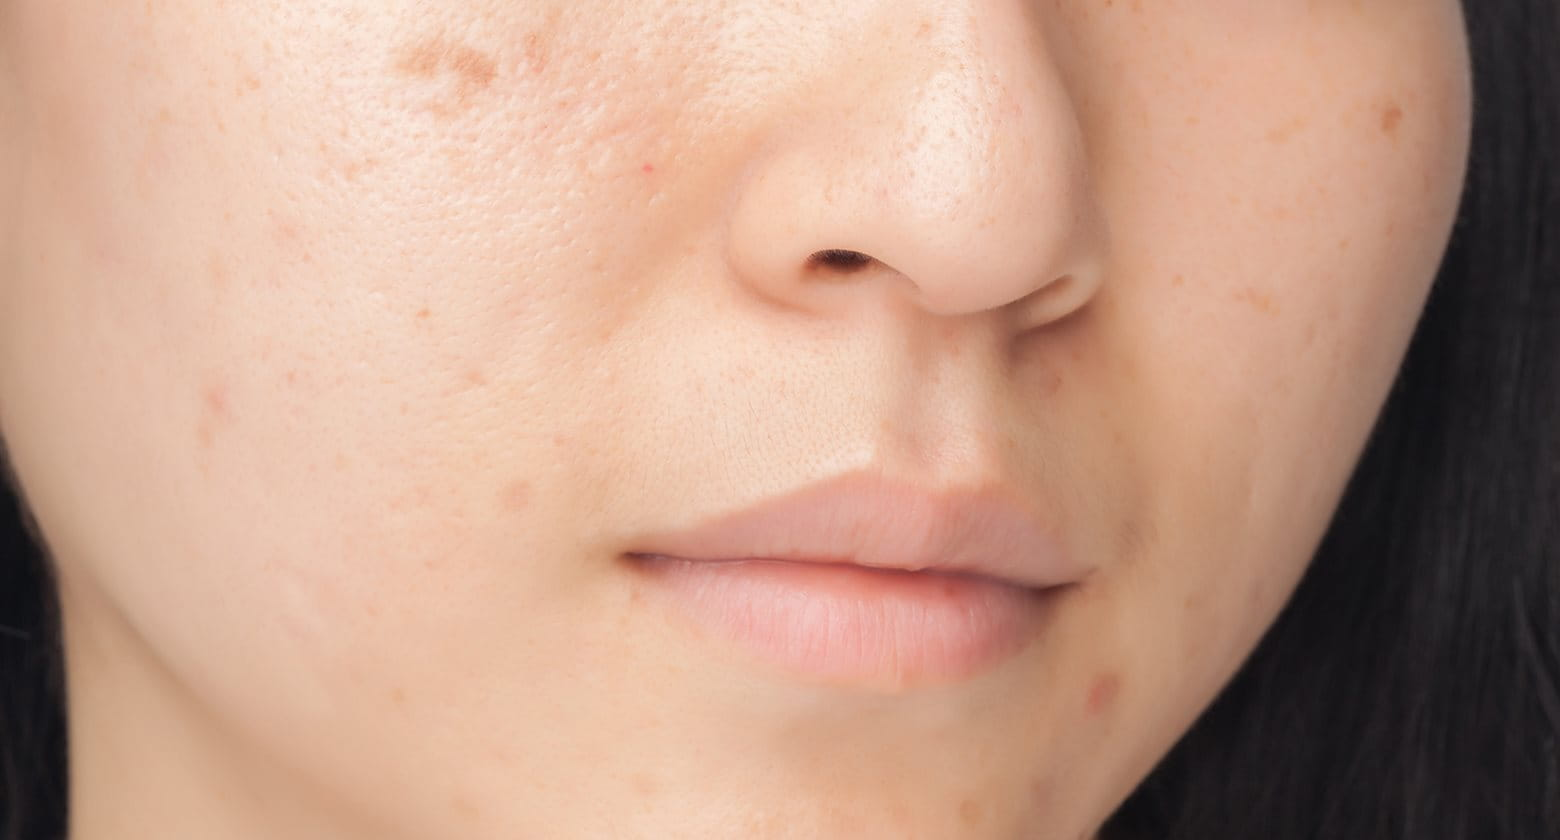 Removing marks from pimples